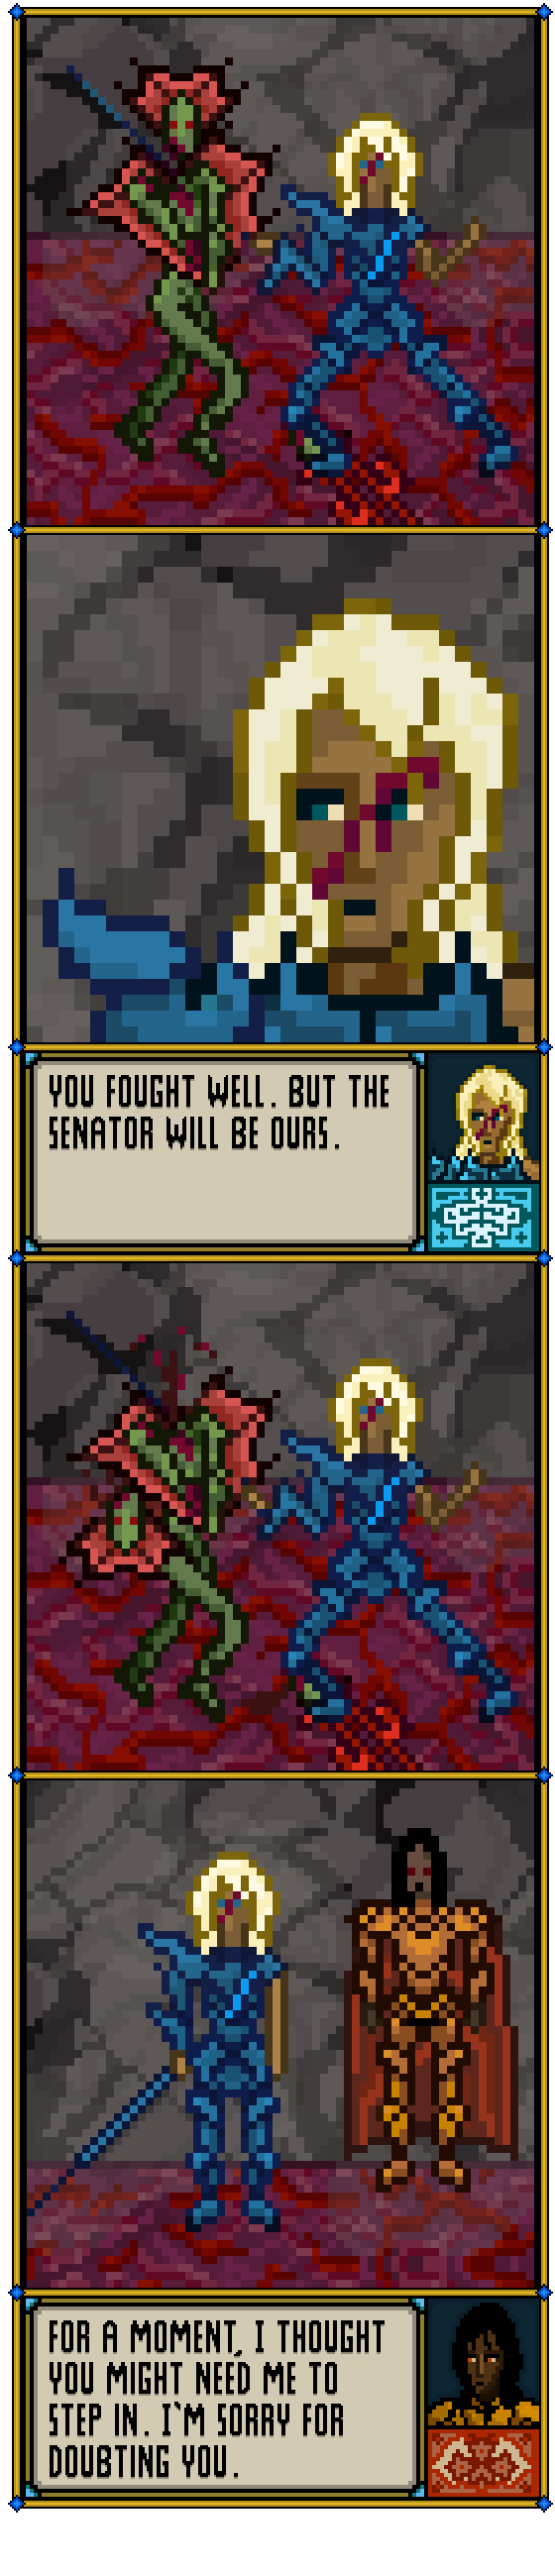 The Senator Will Be Ours